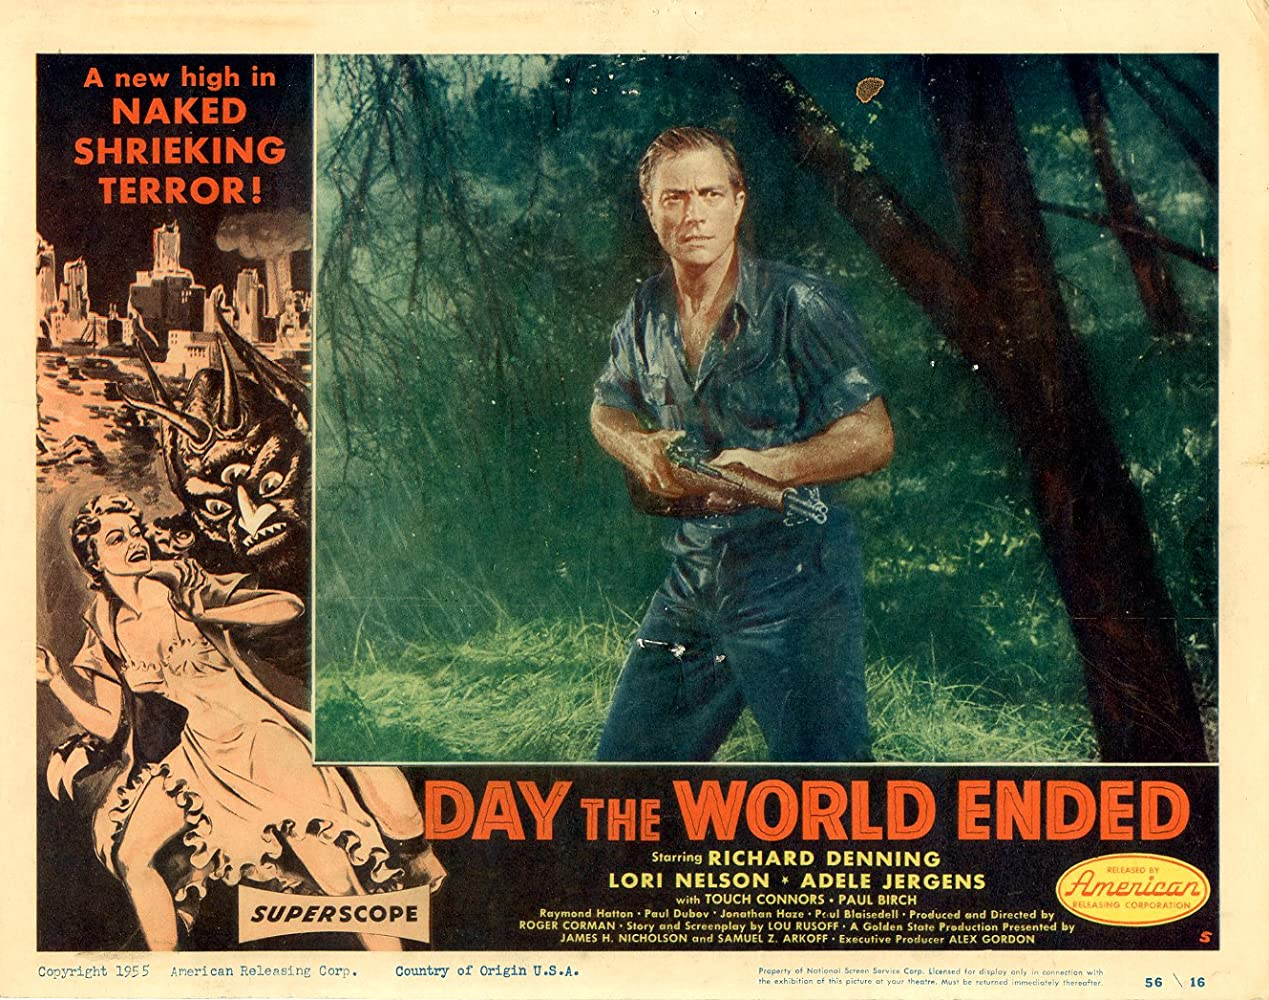 Richard Denning in Day the World Ended (1955)